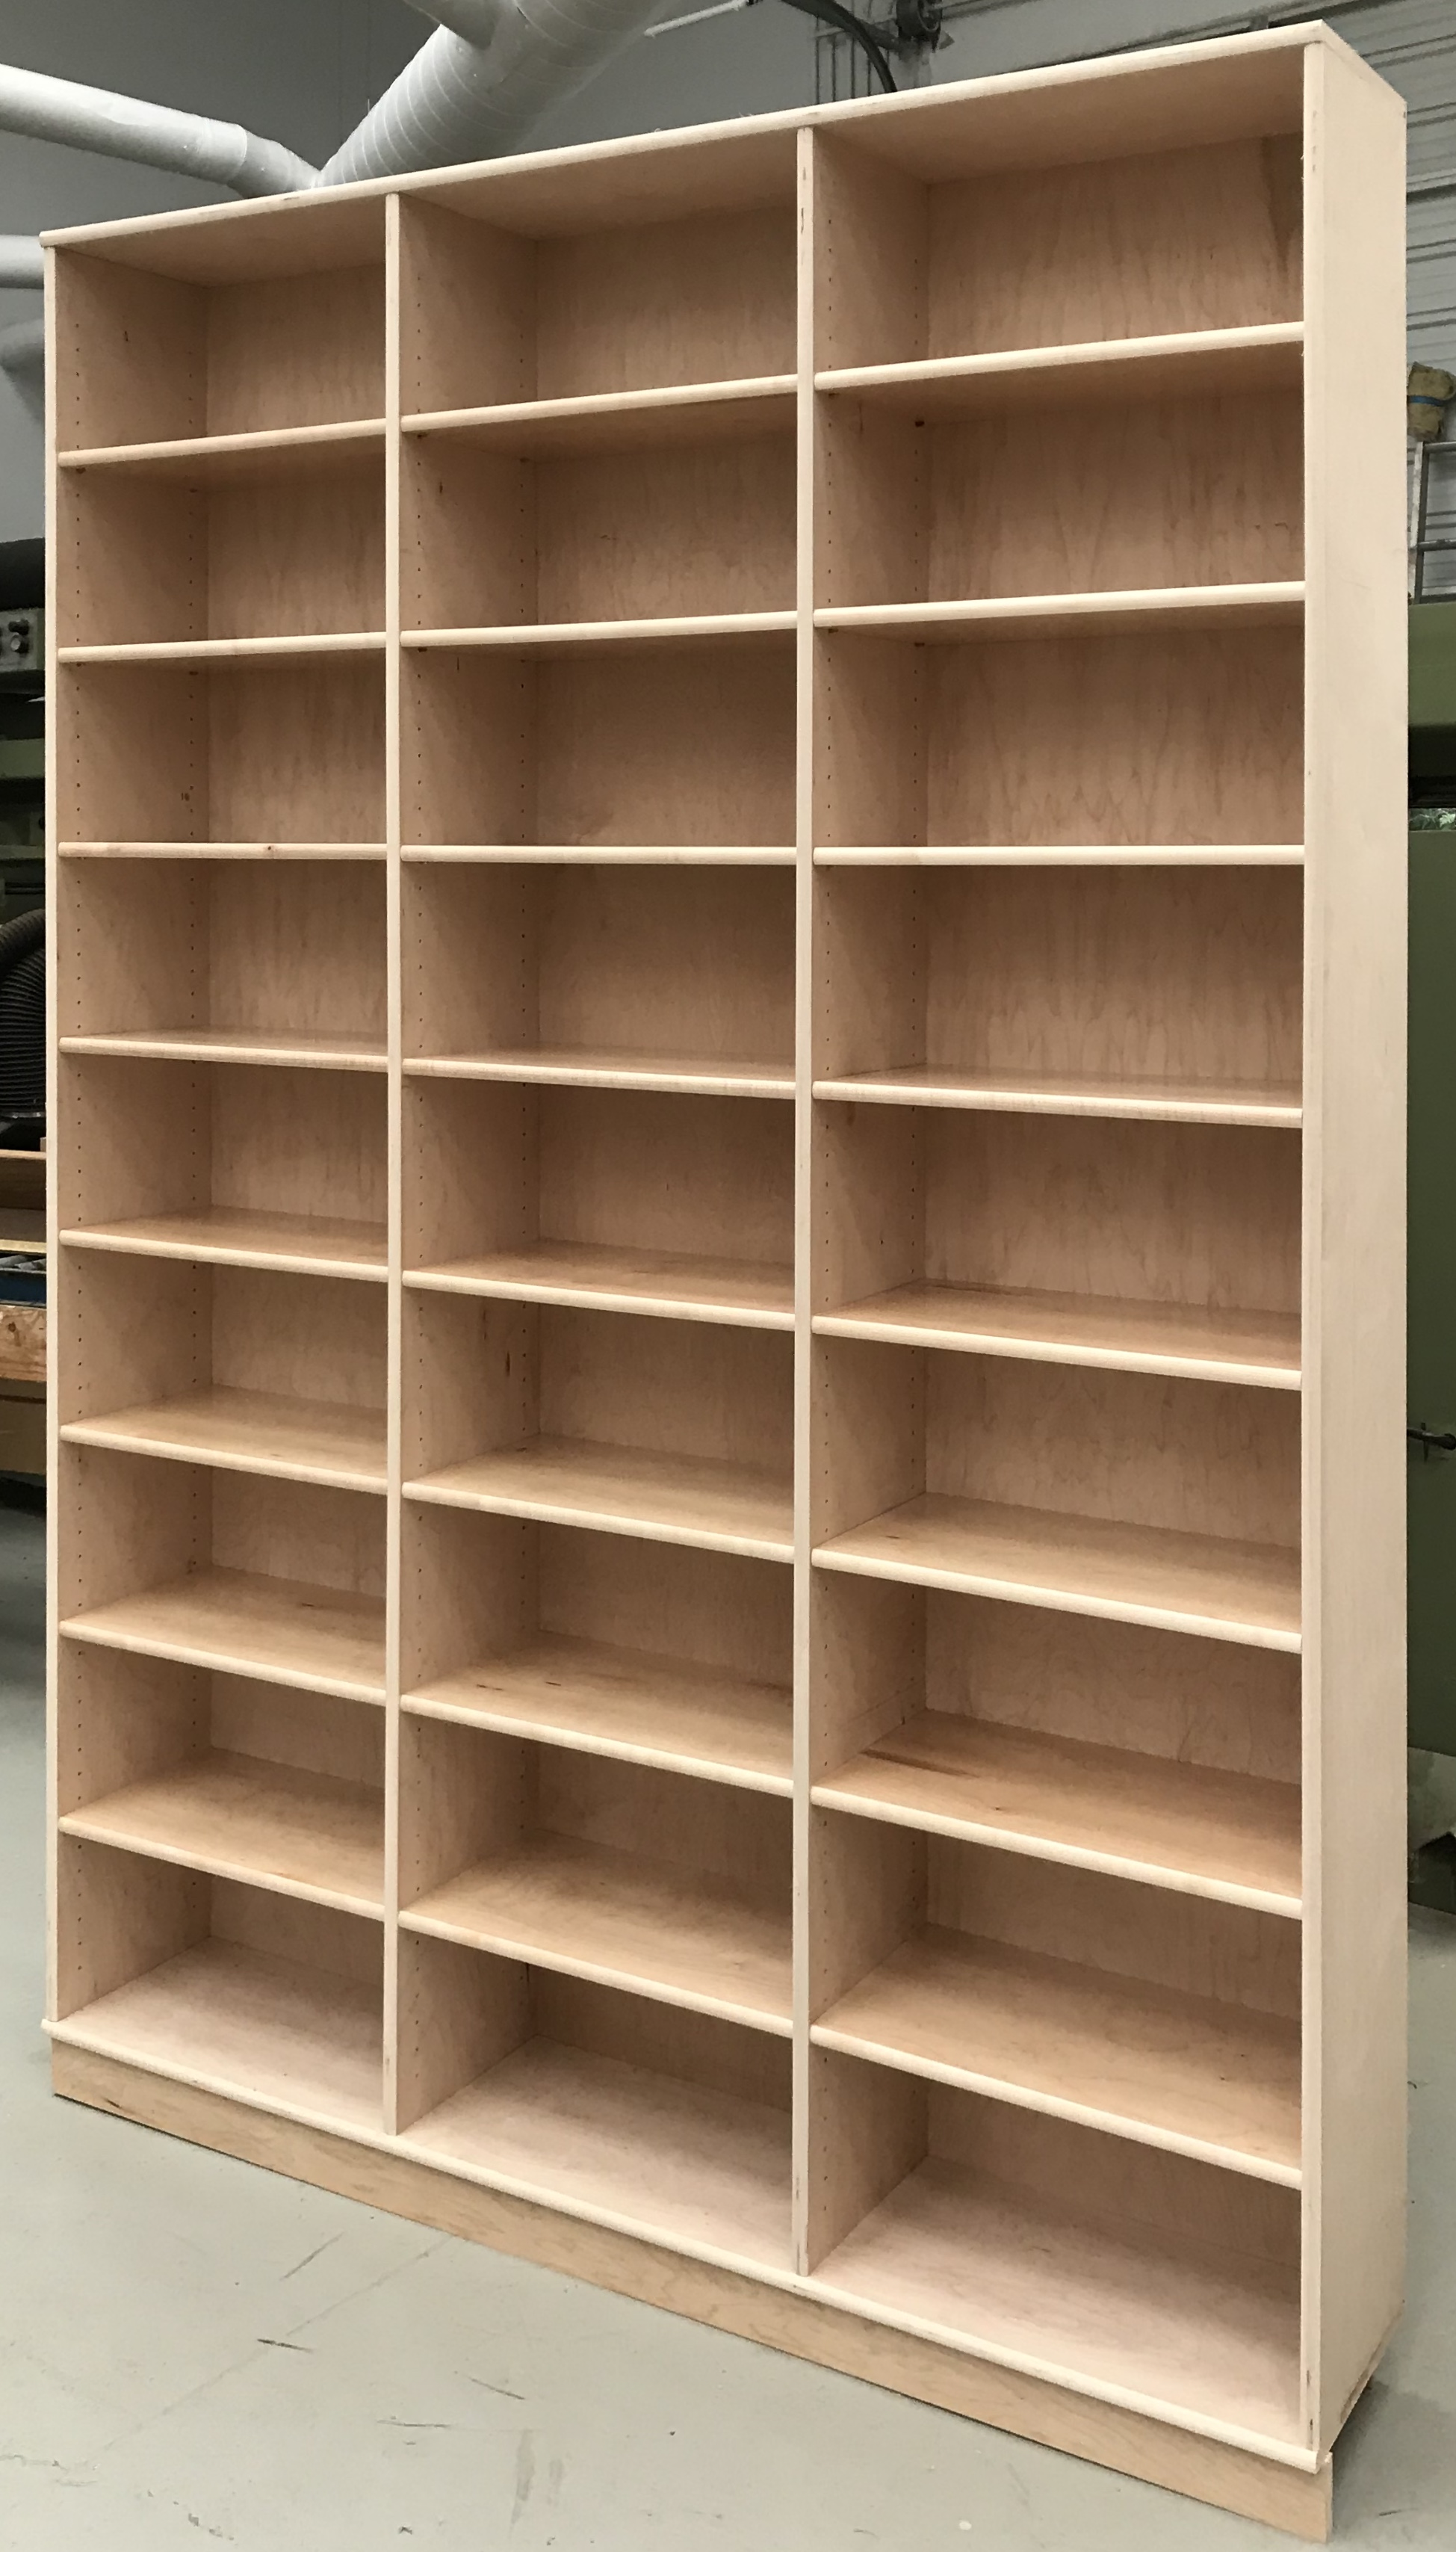 8 foot tall maple bookcase 6 feet wide